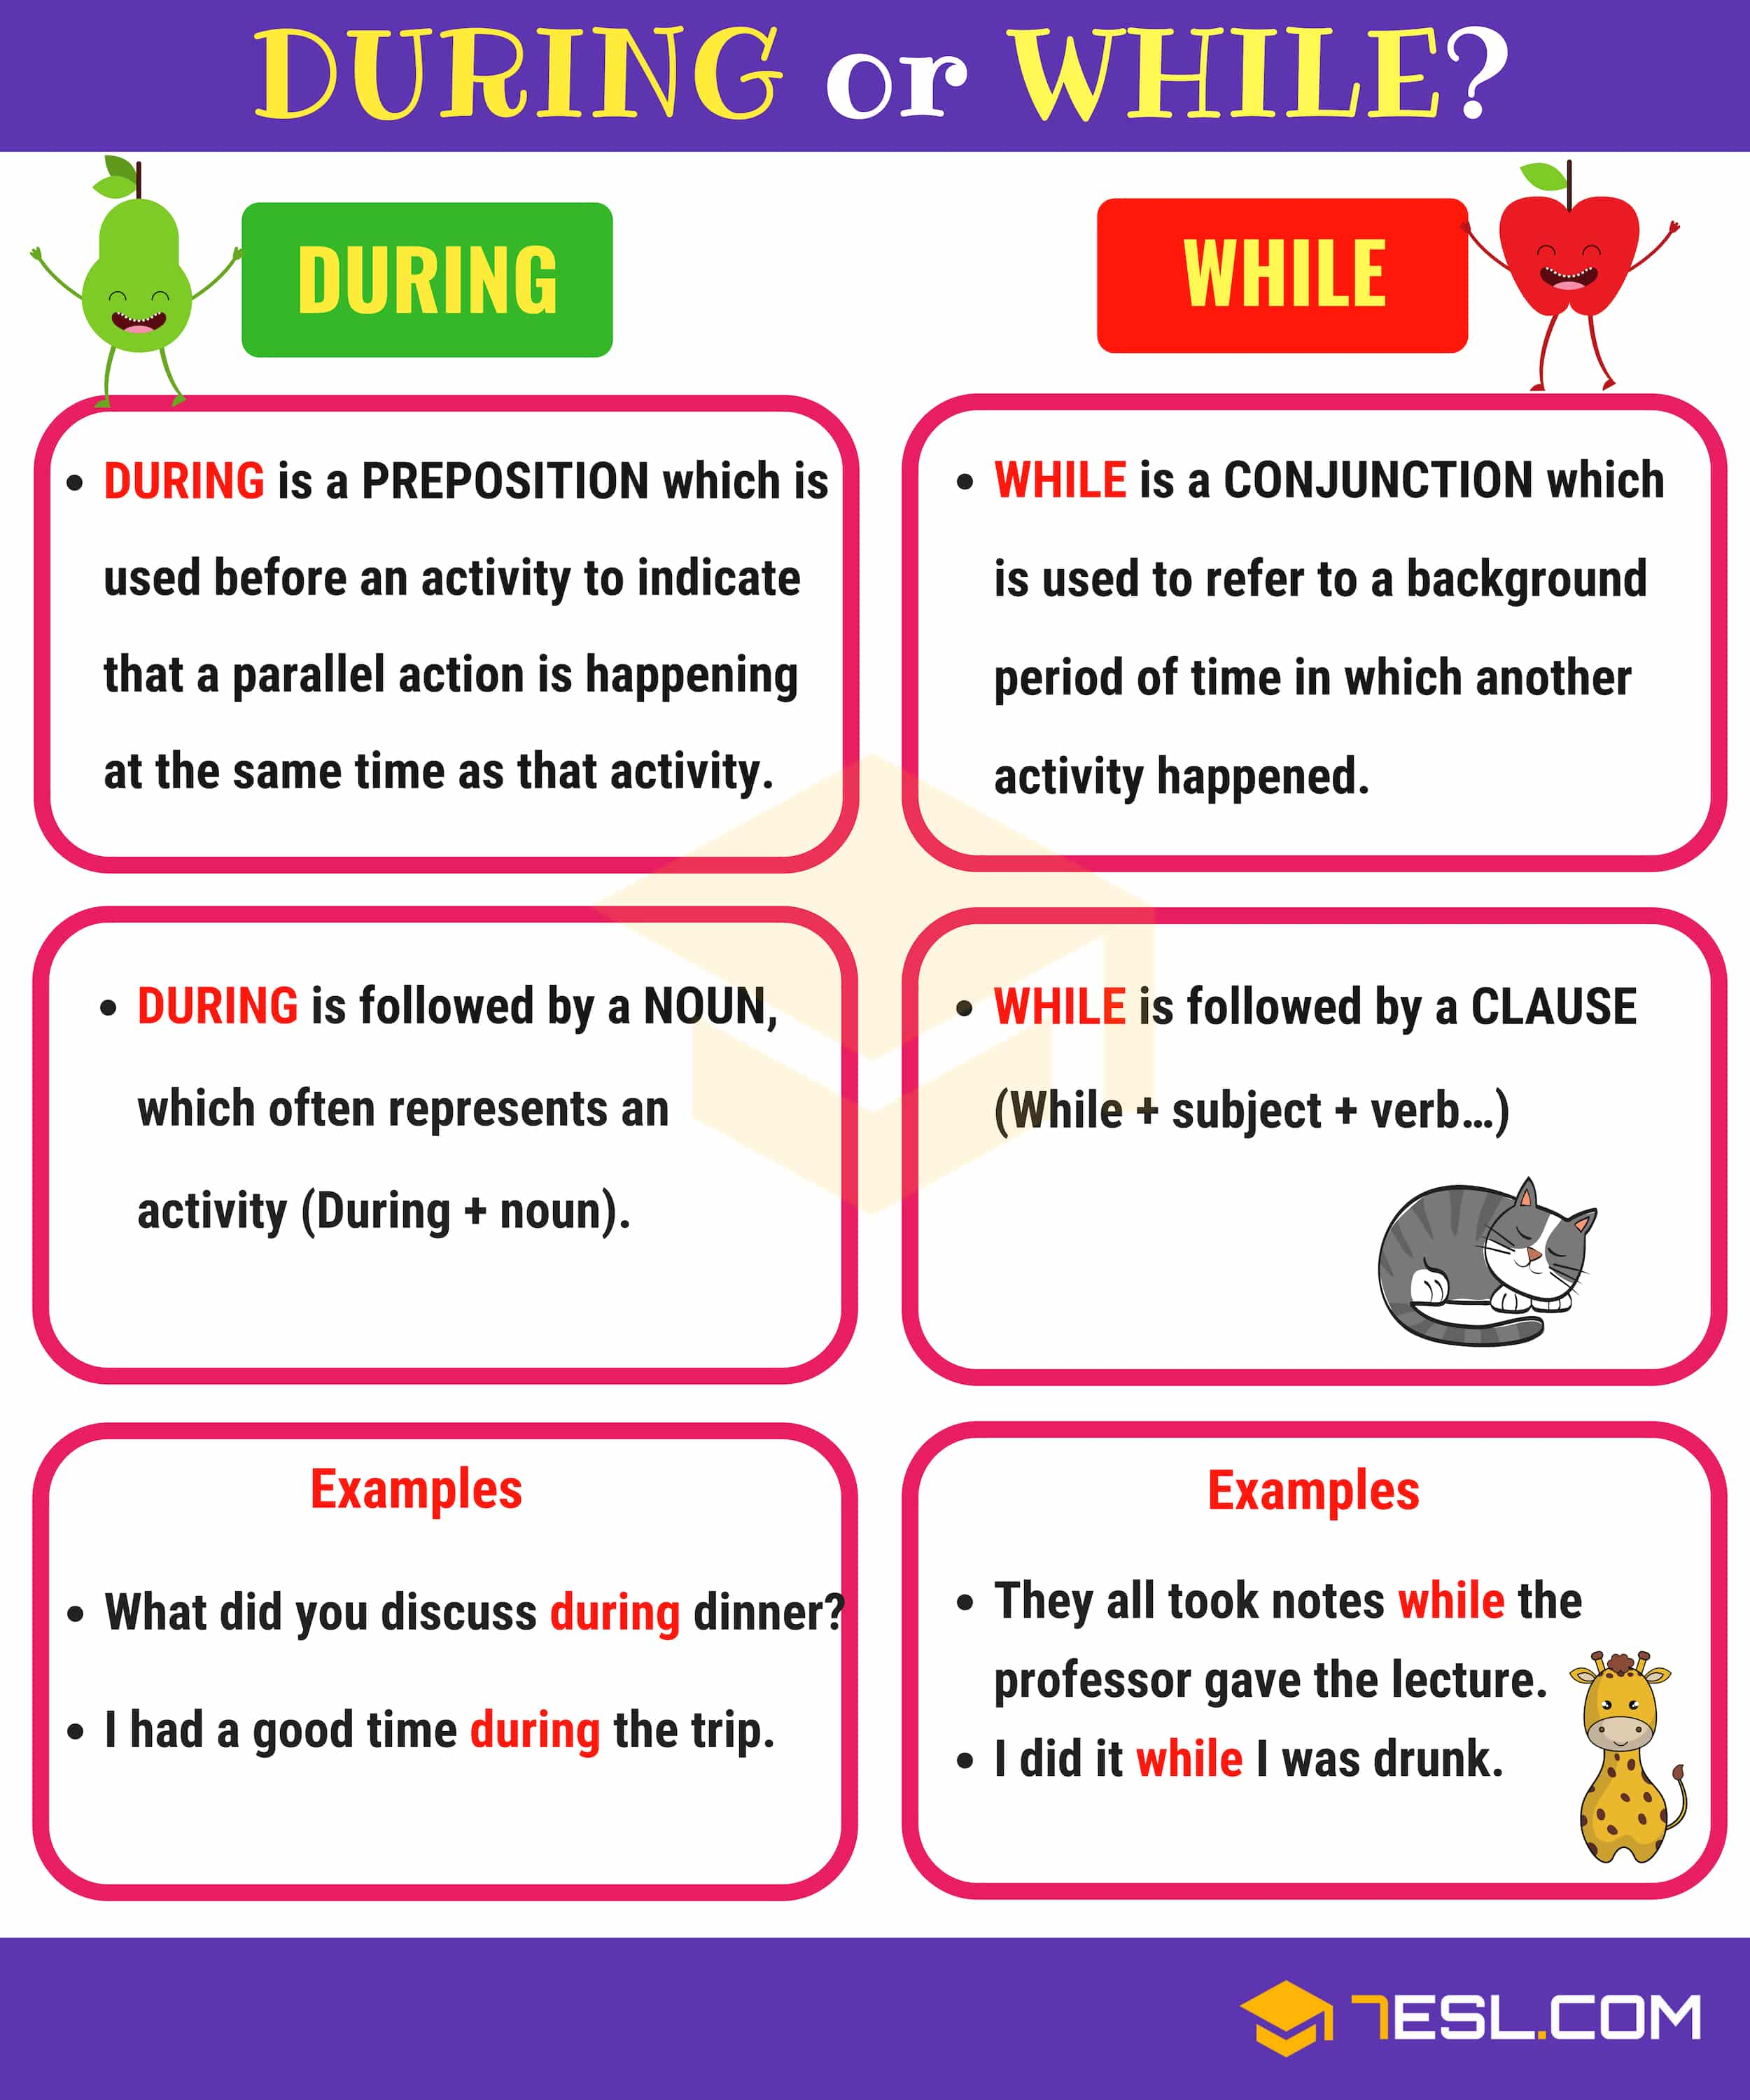 During vs While | Is During a Preposition?